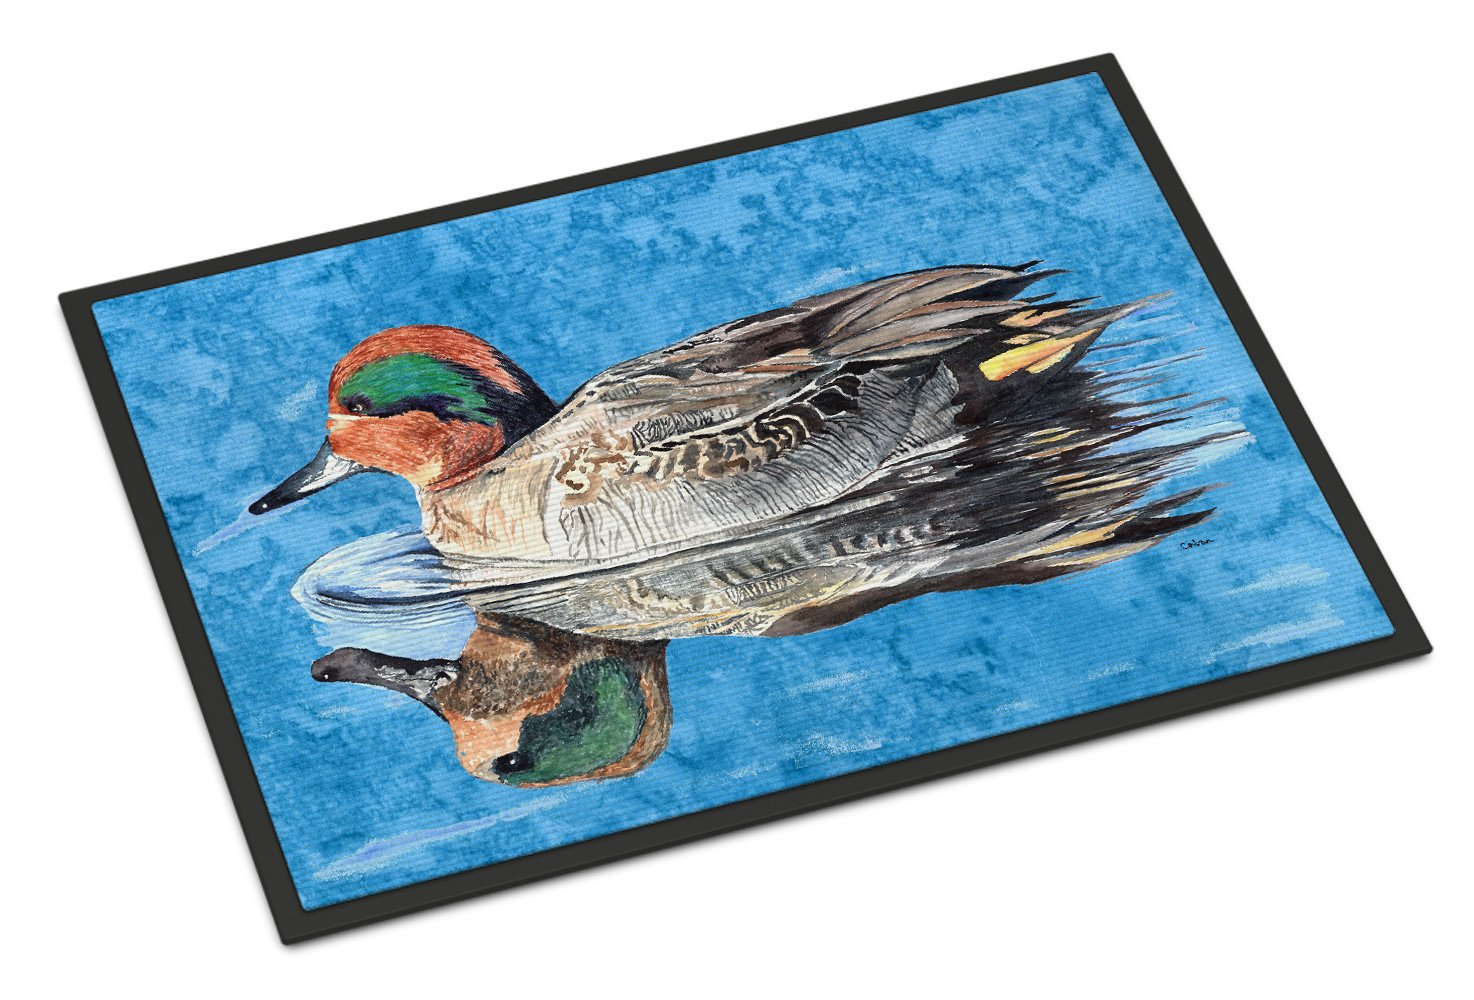 Teal Duck Indoor or Outdoor Mat 18x27 by Caroline's Treasures